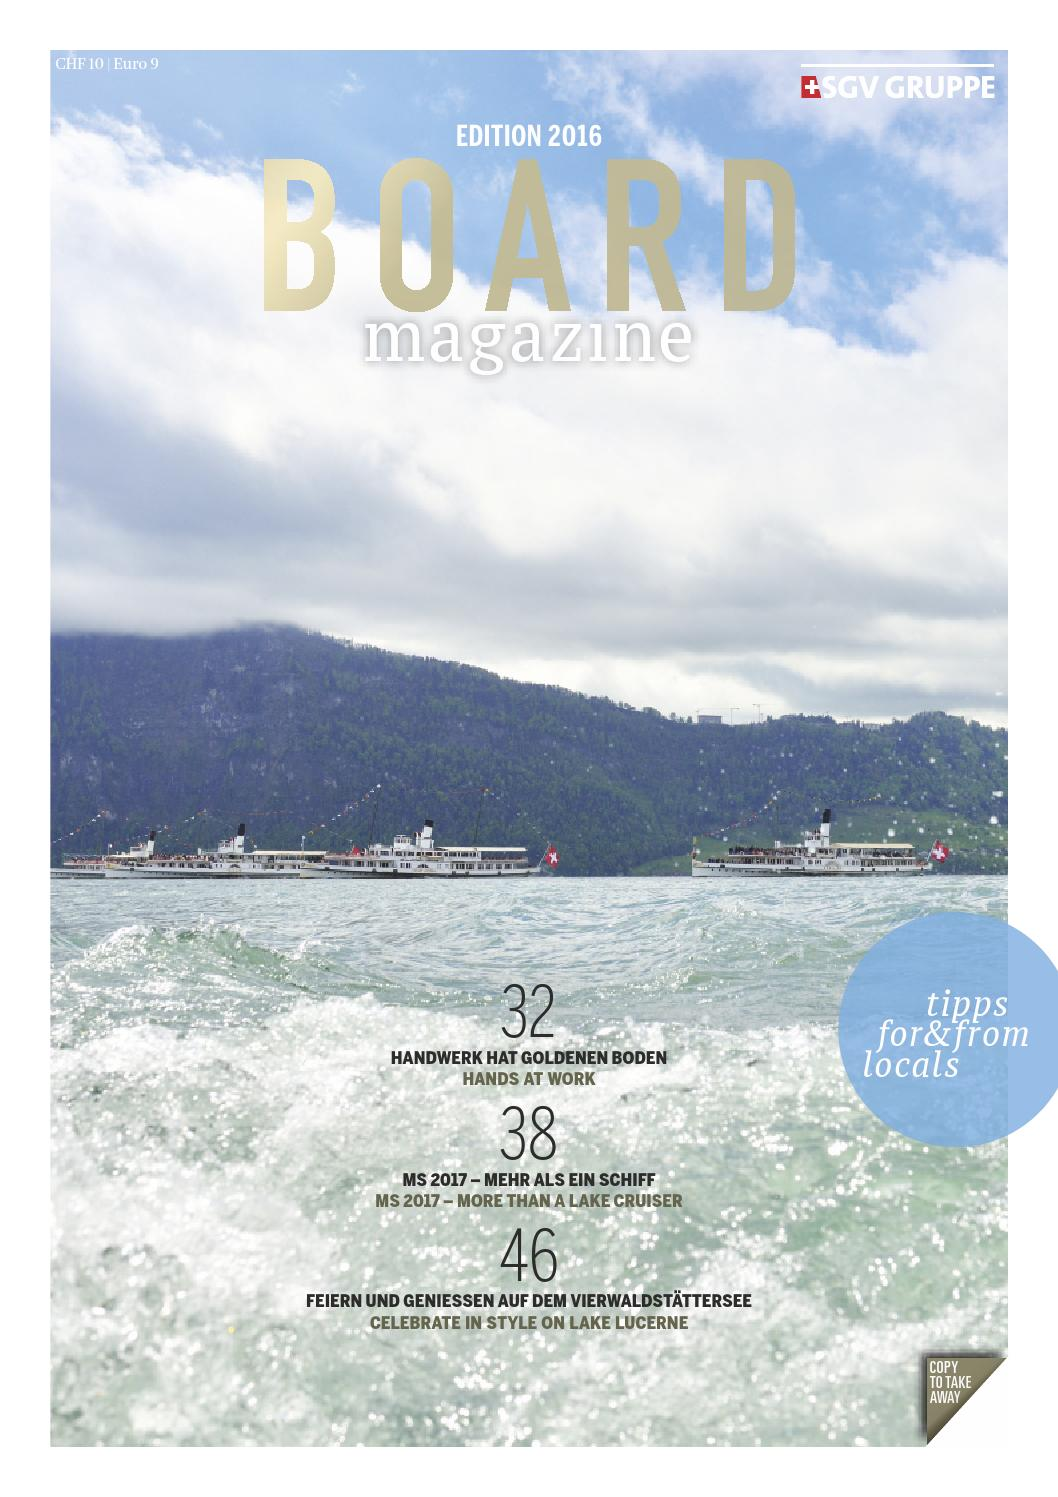 Boardmagazine 2016 By Ba Media Gmbh Issuu